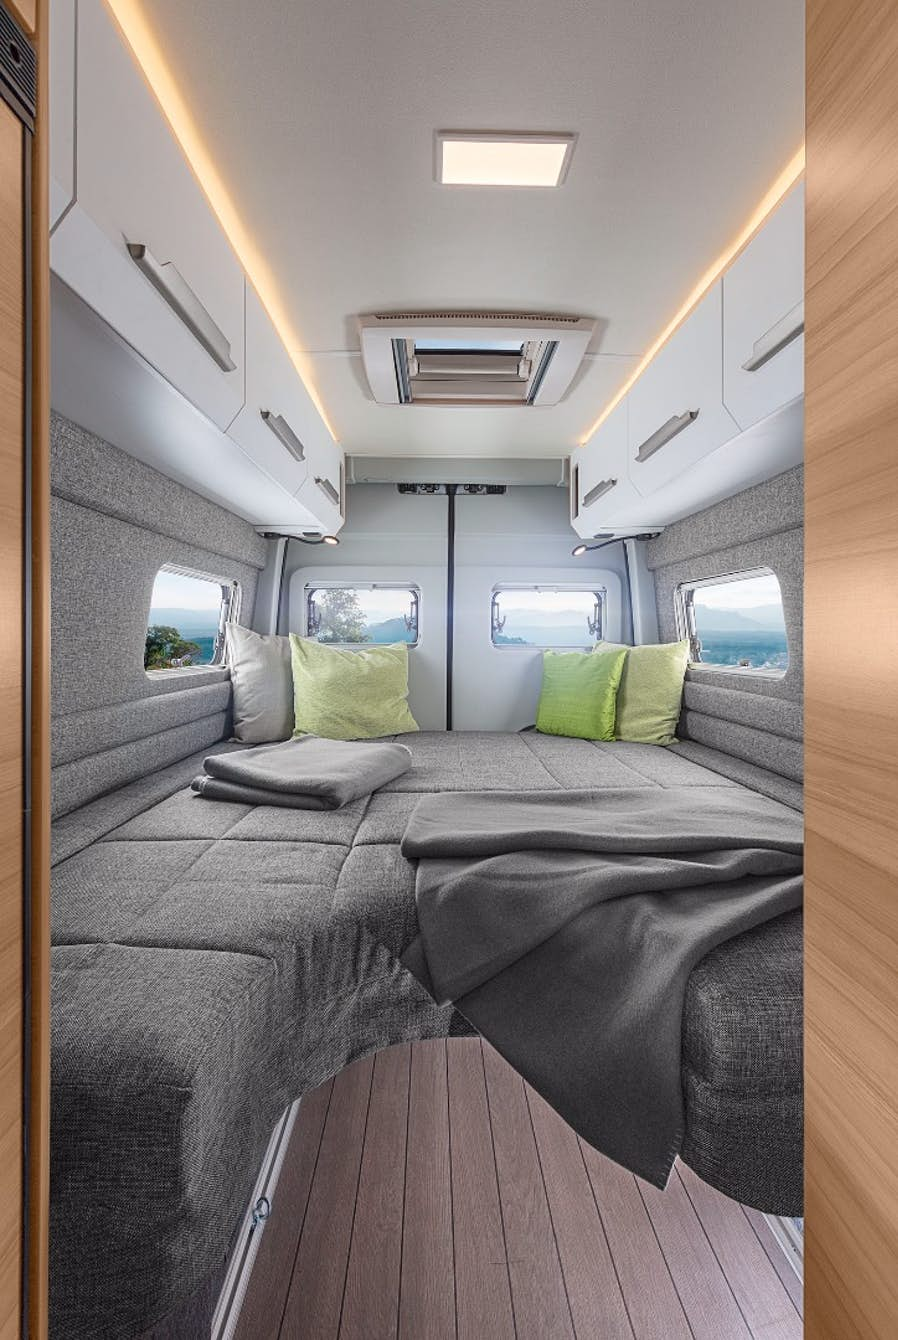 Knaus Boxdrive Camper Uses Folding Bed And Wet Bath To